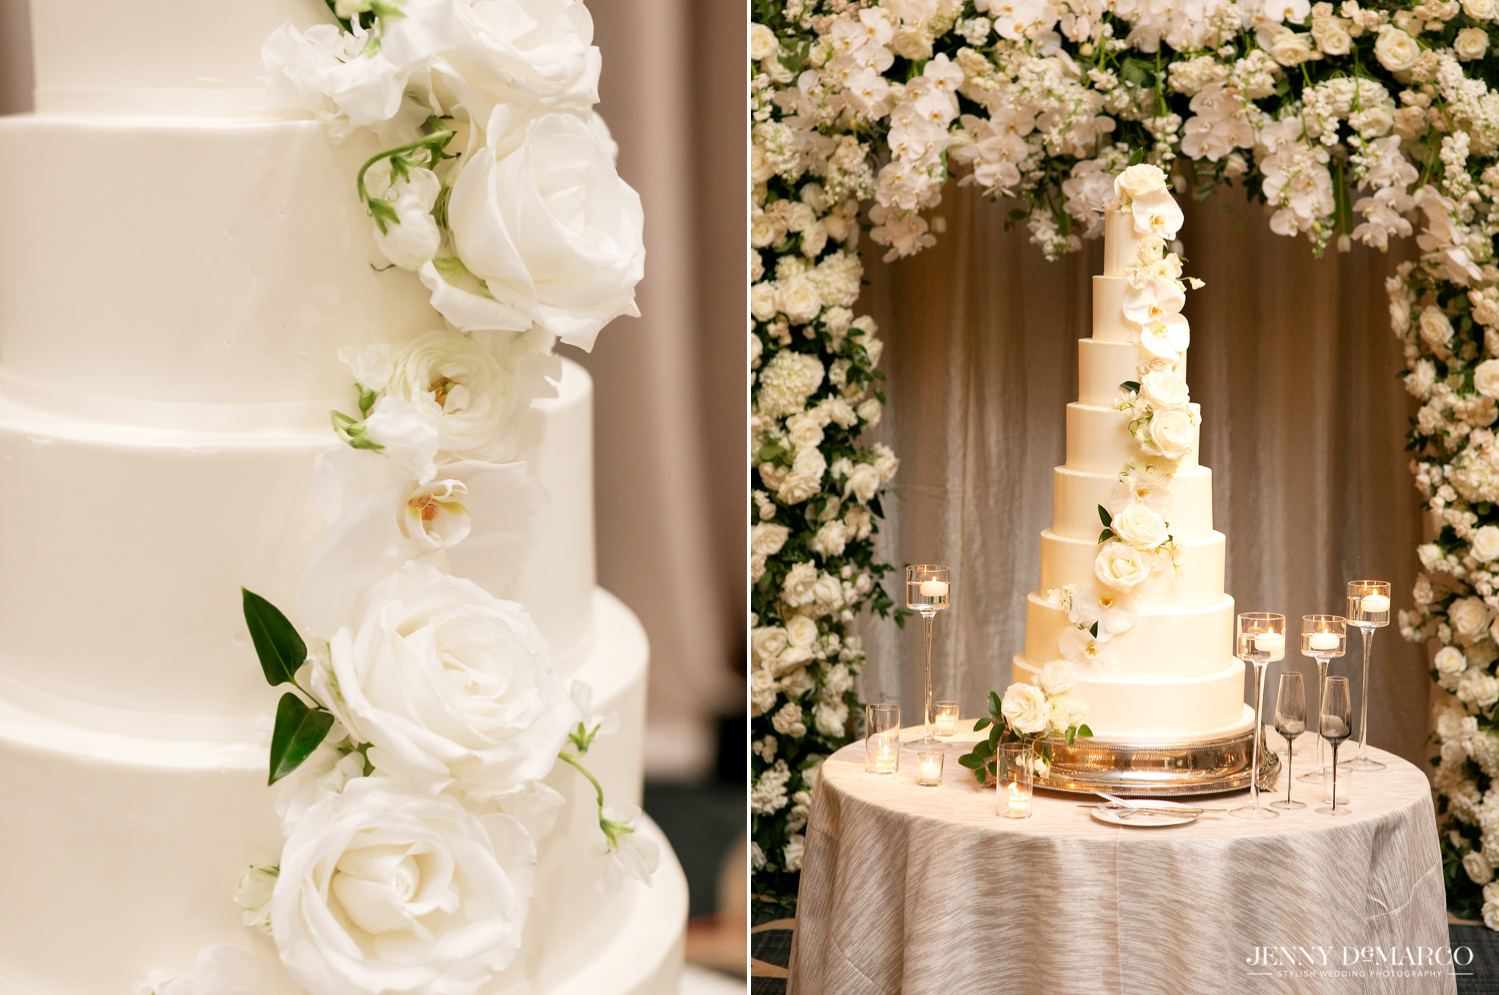 eight layer wedding cake with beautiful flower details on the side